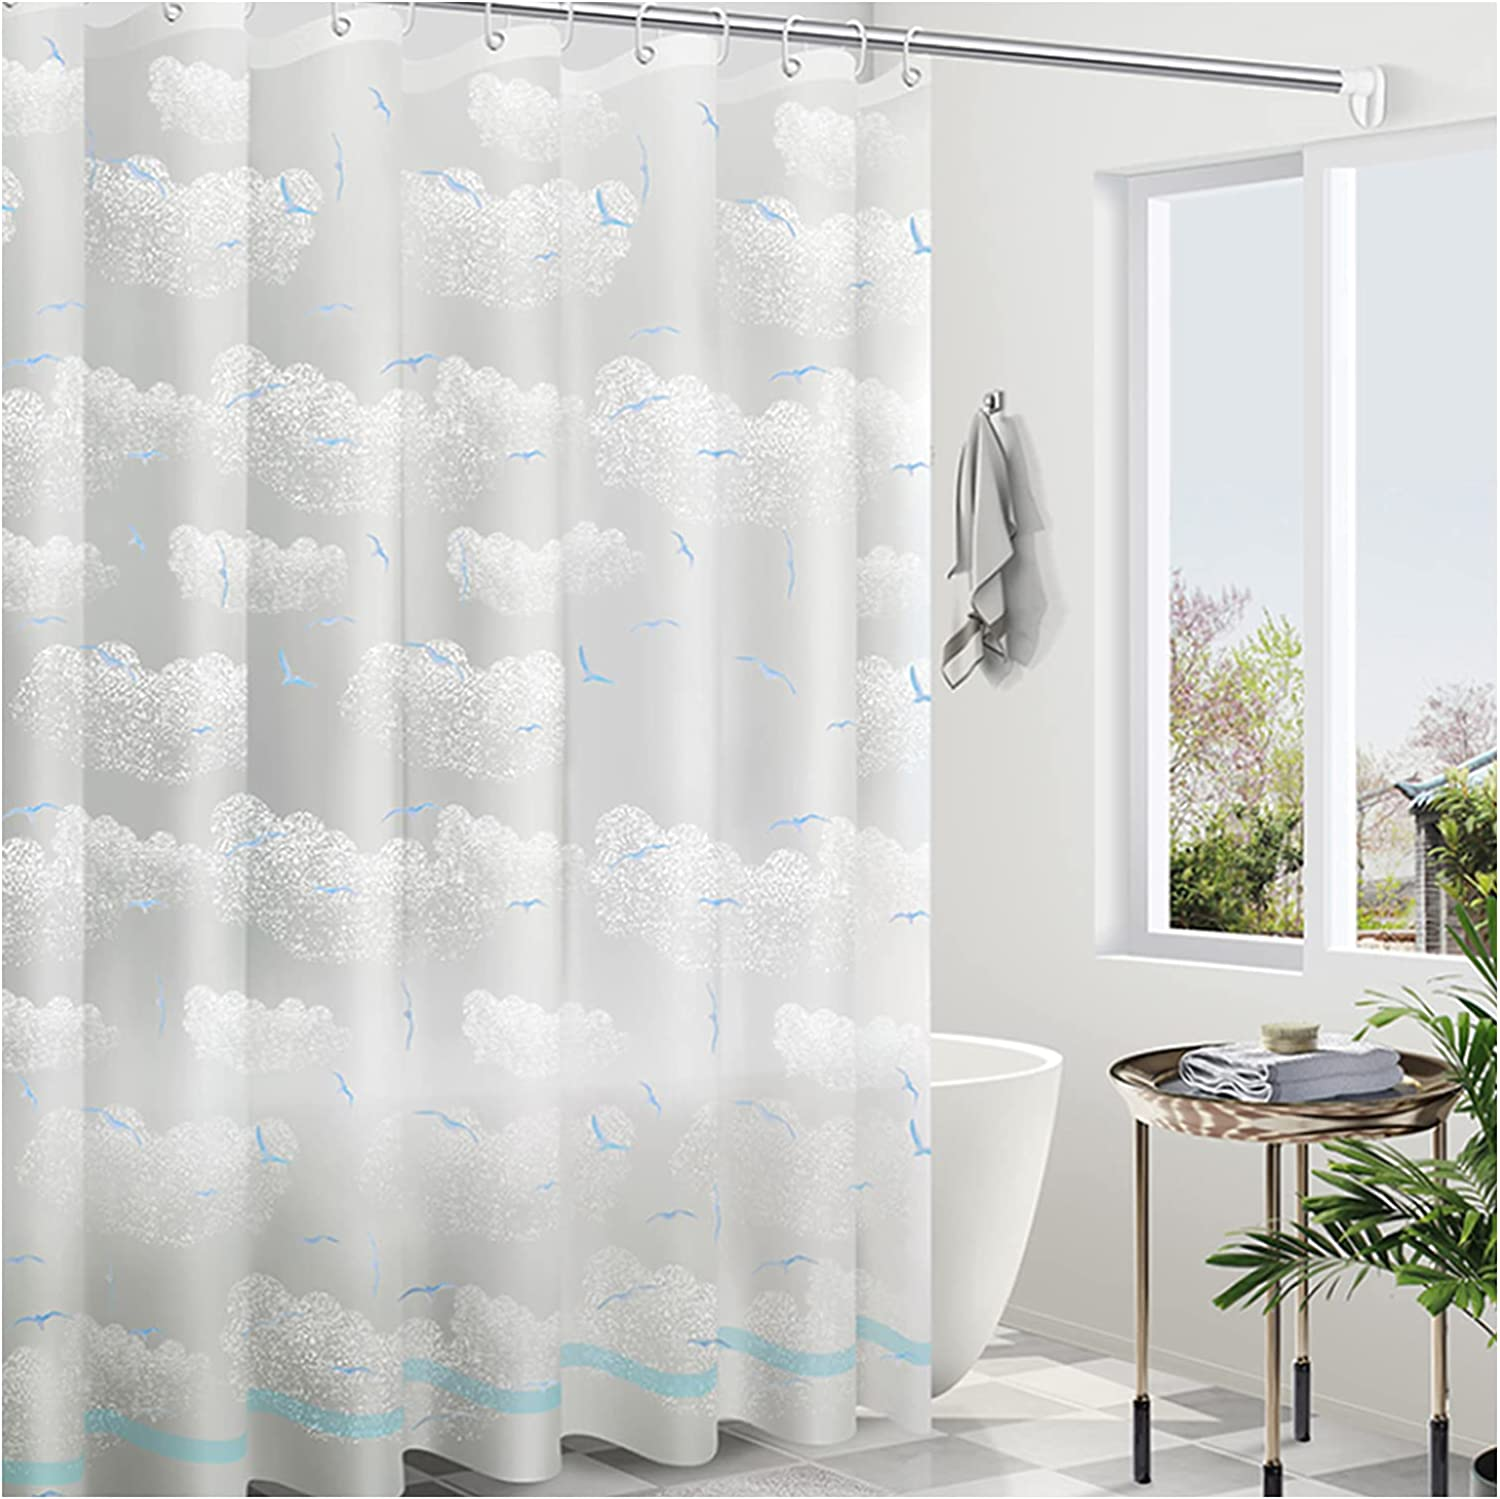 Bathroom Daily bargain sale Max 58% OFF Curtain Quick-Drying Weighted Durable Shower